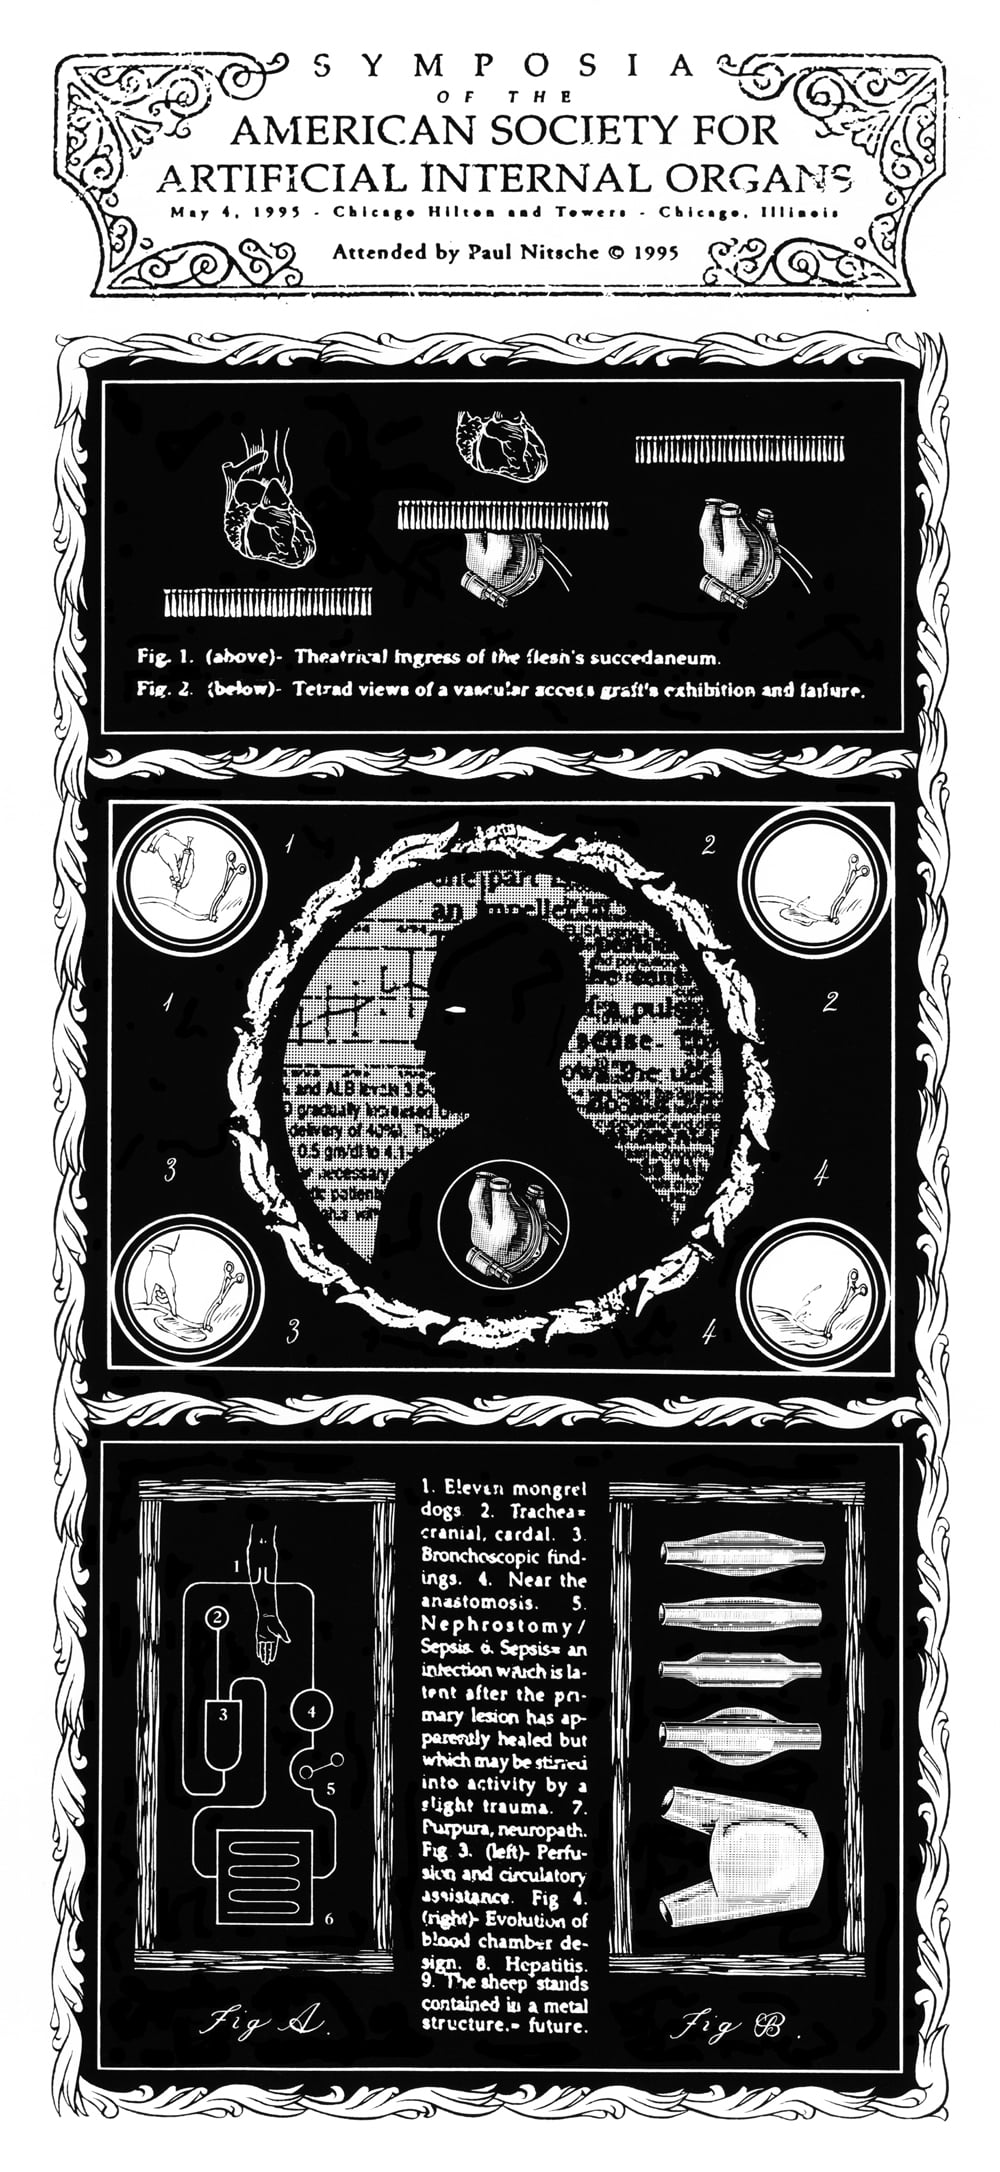 Symposia of the American Society for Artificial Internal Organs . 1 Page. 1995. Pen and ink, Scratch board. Published by  New City  Weekly Newspaper.